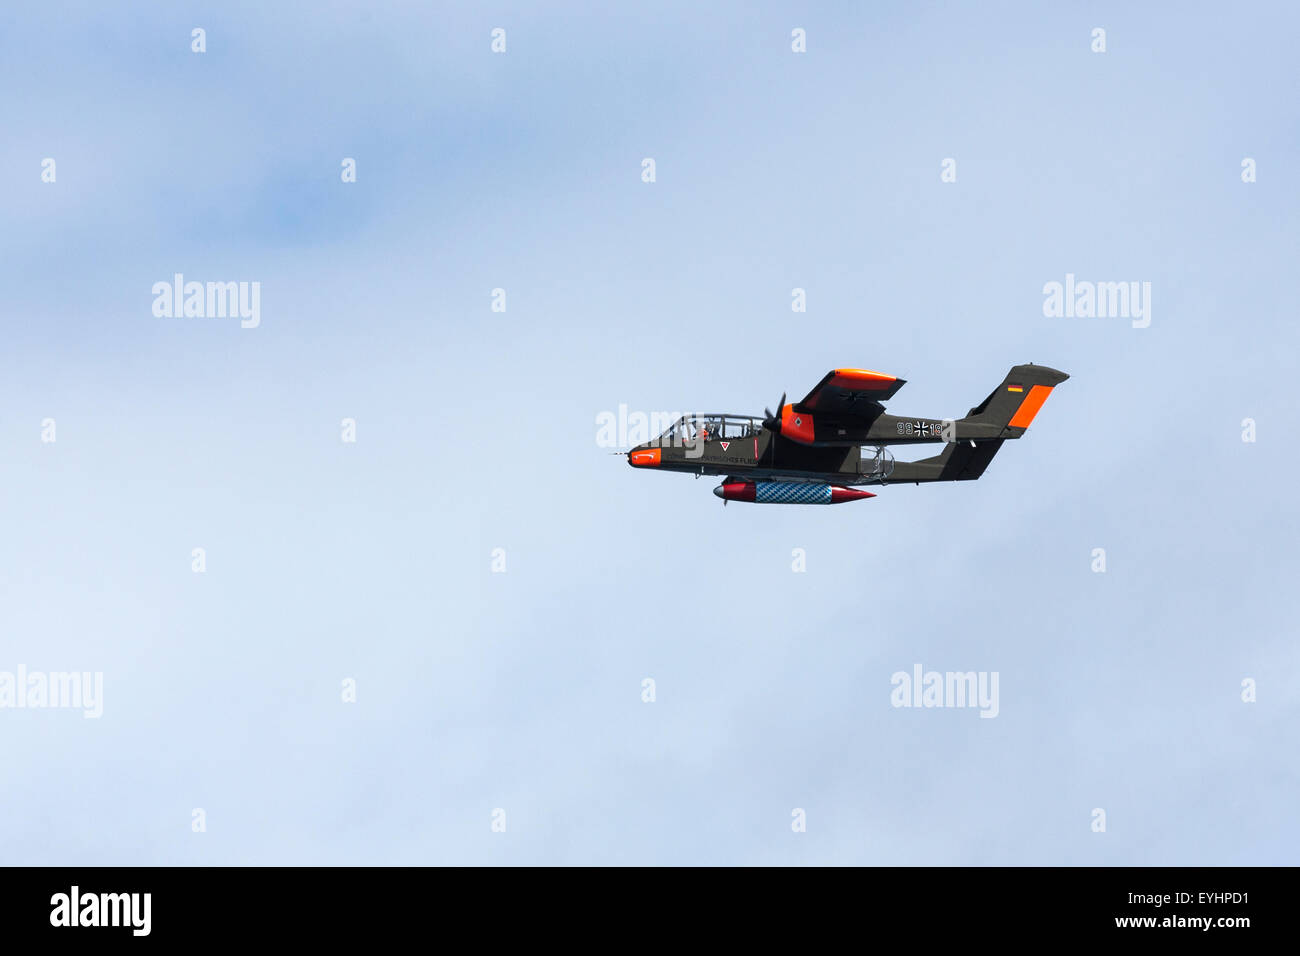 The North American Rockwell OV-10 Bronco is a turboprop light attack and observation aircraft. - Stock Image